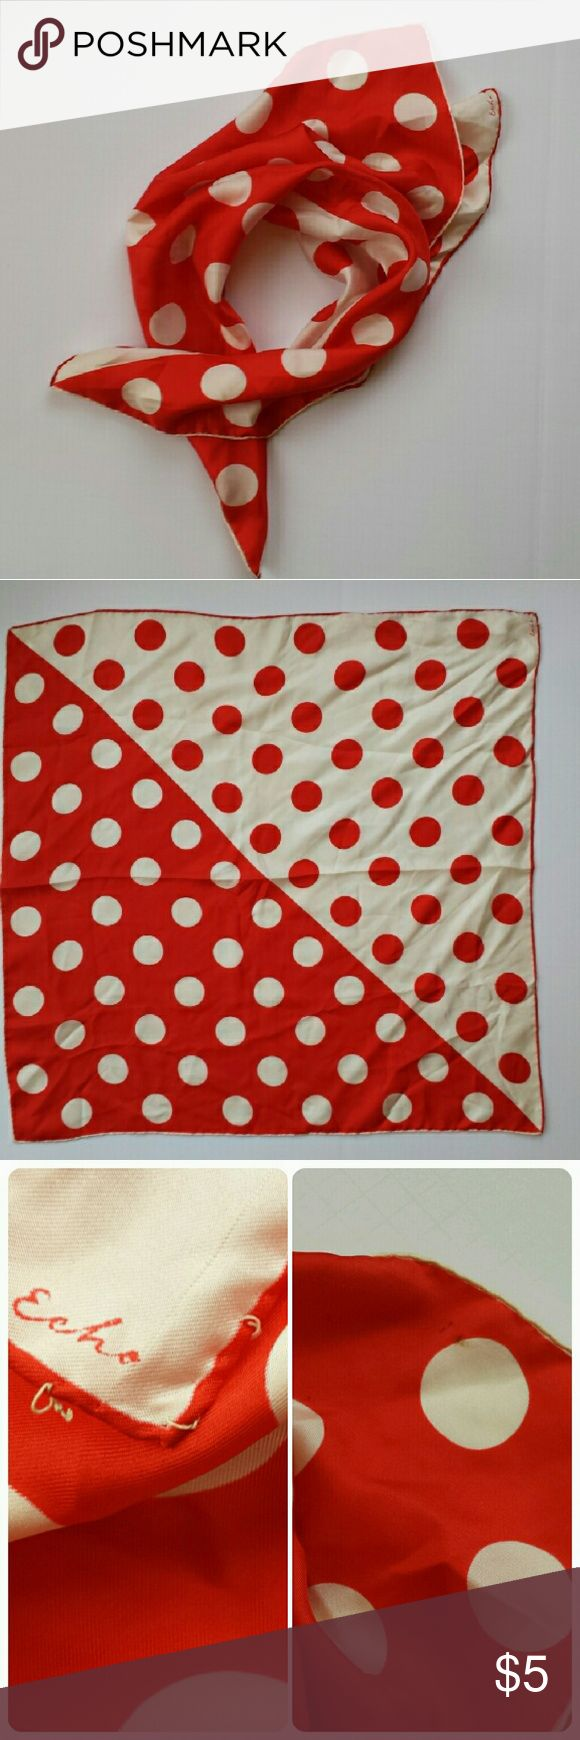 "60s Mod Vintage Echo Dot Design Scarf Red and cream (once a whiter cream) dots printed on 26"" square silk with a hand rolled hem. This cute Echo scarf from the 60s is a bargain just because it needs a little TLC. Yes, it's a bit tired. But, it's nothing that dry cleaning and a touch up to the corner hem can't cure (see last photo.) Get it now at this low price... once I restore it, I'll relist it for is true value. Echo Accessories Scarves & Wraps"